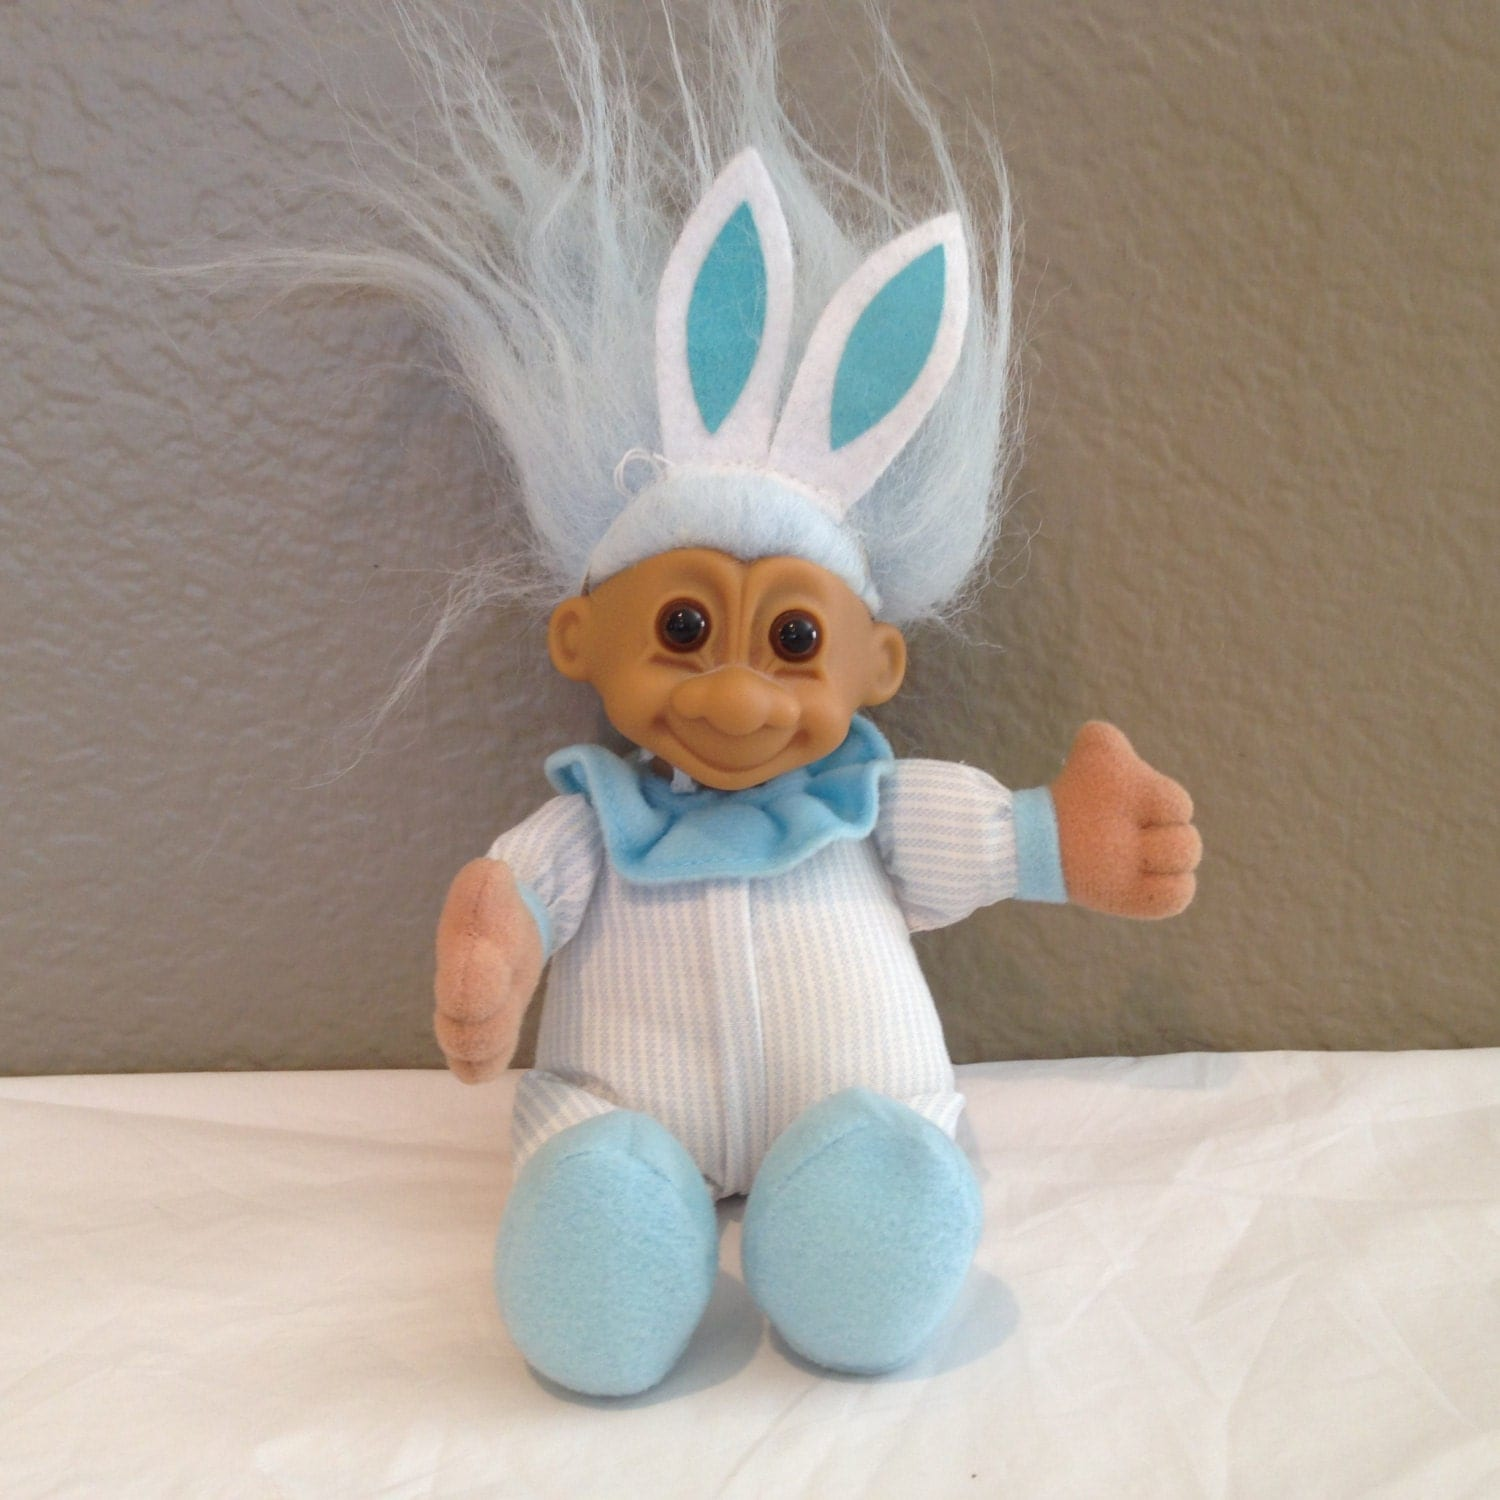 Vintage Russ 6.5 Soft Body Bunny Troll Baby Doll With